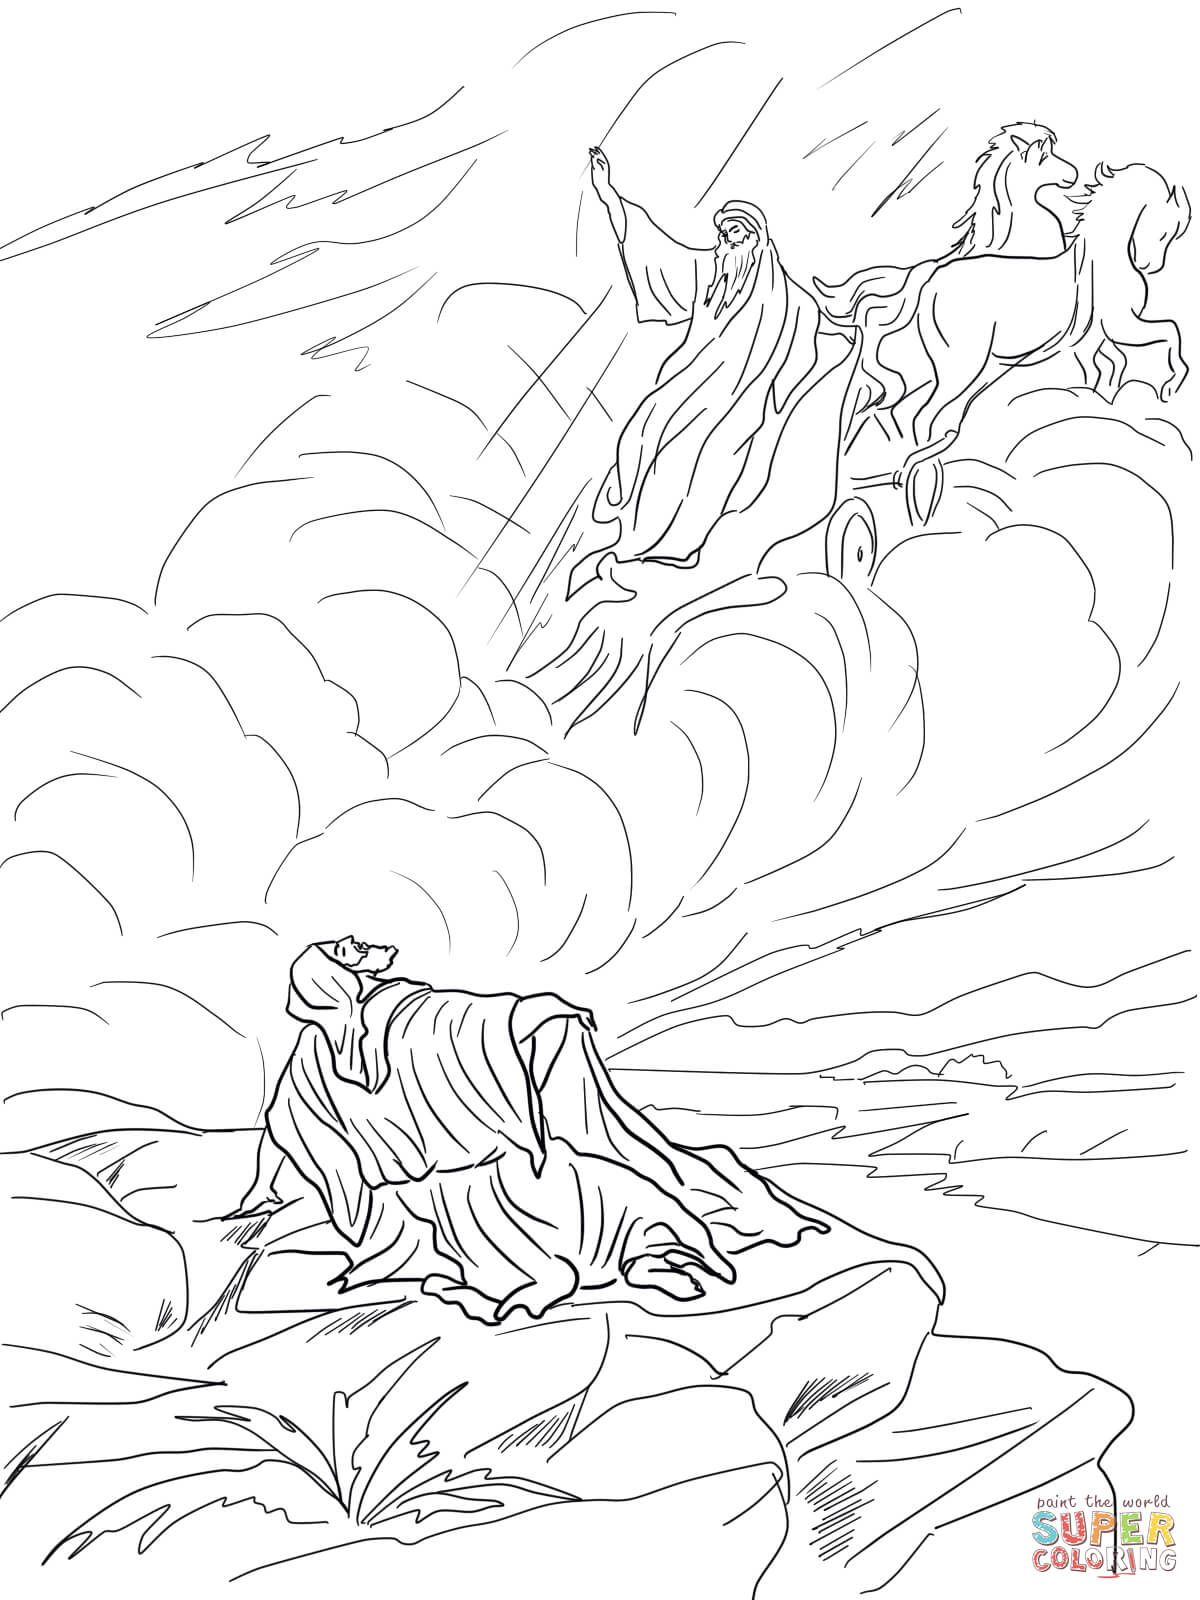 Free coloring pages elijah goes to heaven - Elijah Taken Up To Heaven In A Chariot Of Fire Super Coloring